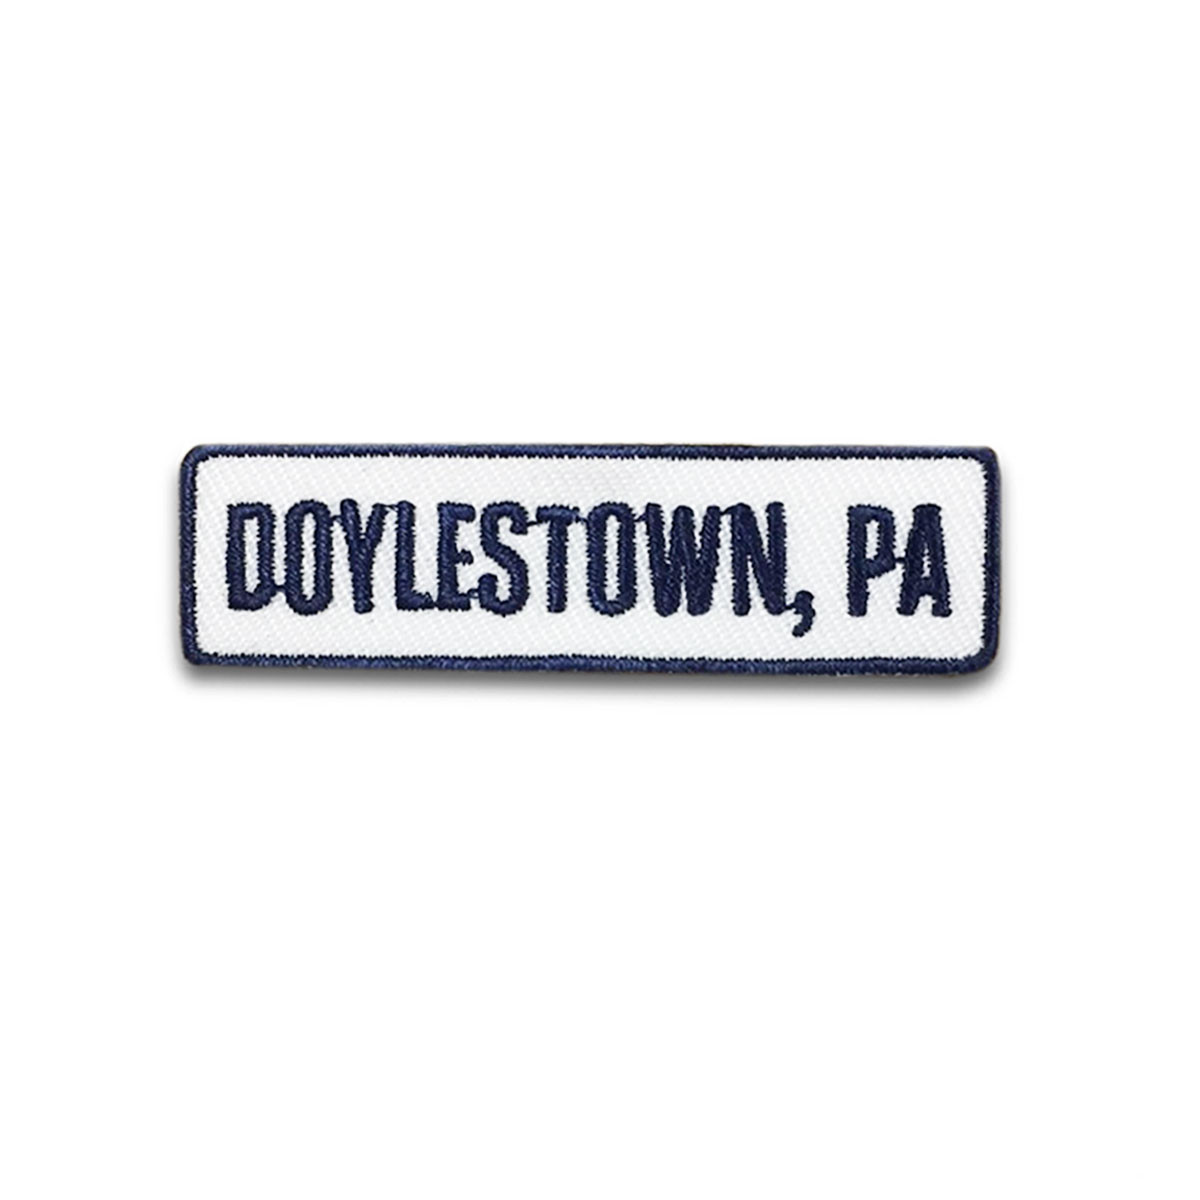 Doylestown, PA Rocker Patch